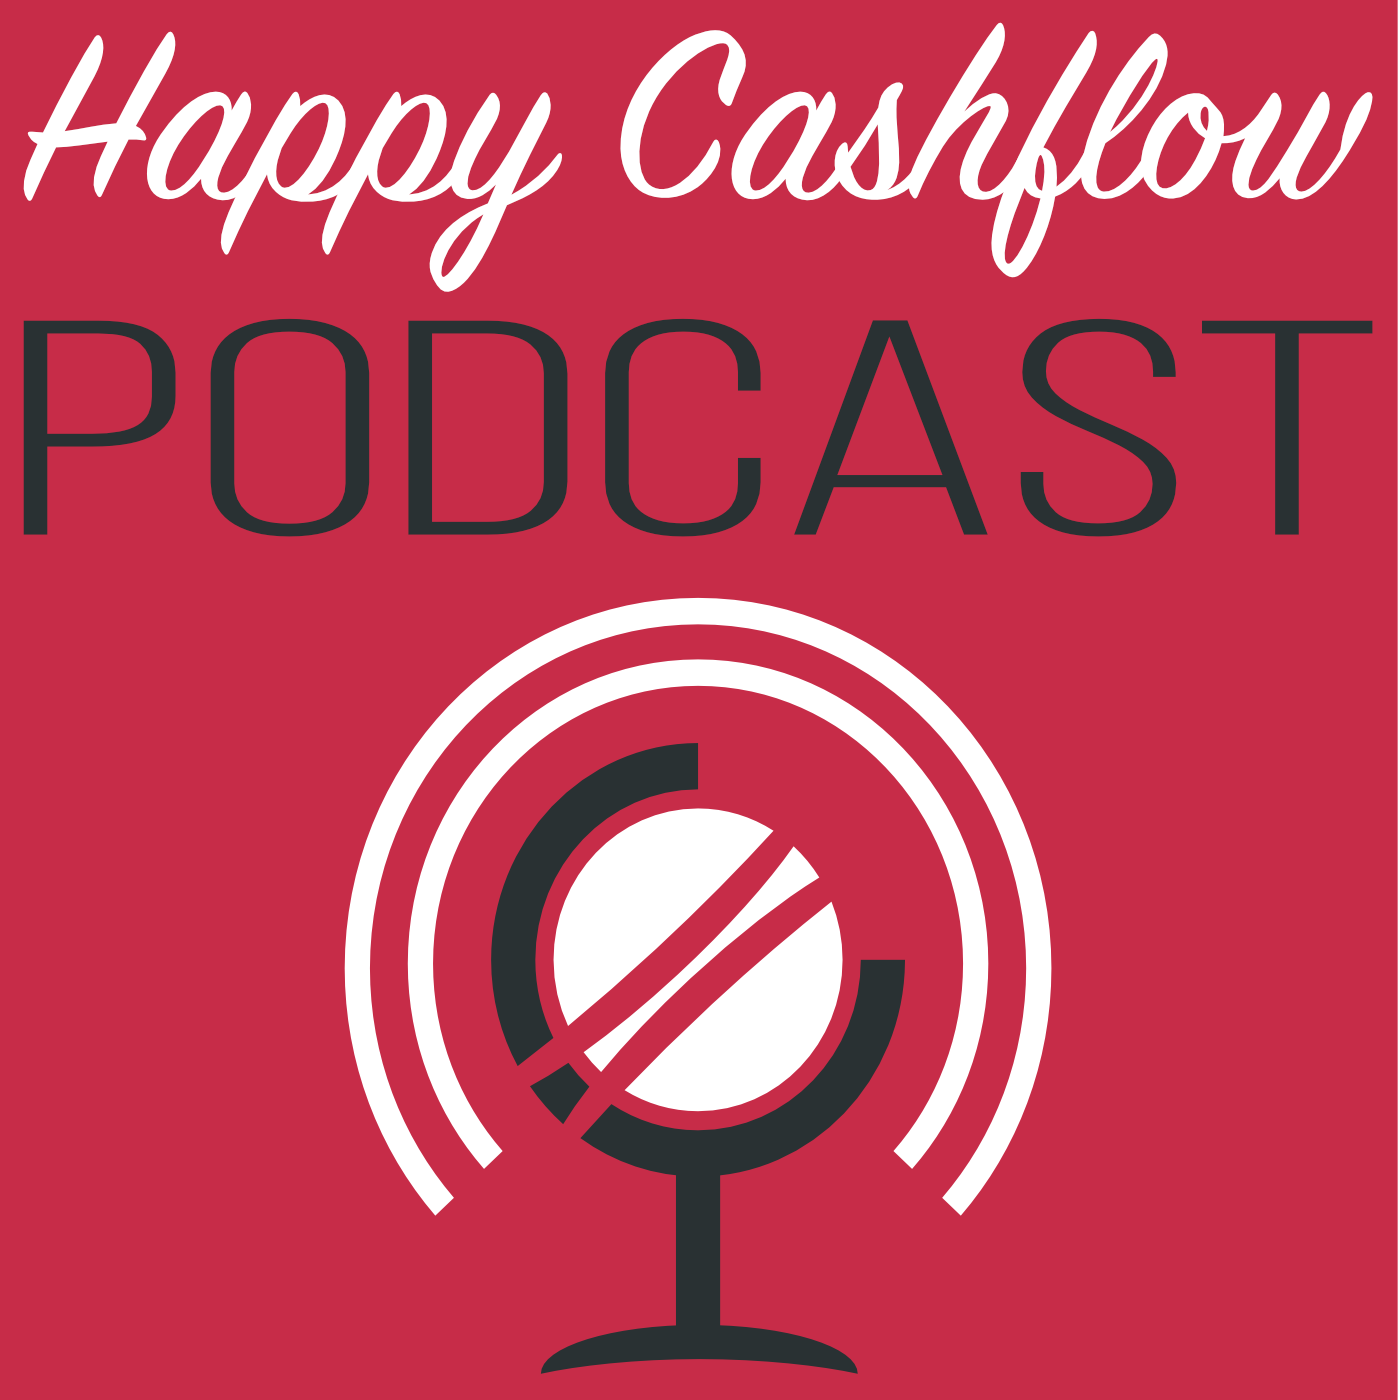 Happy Cashflow Podcast